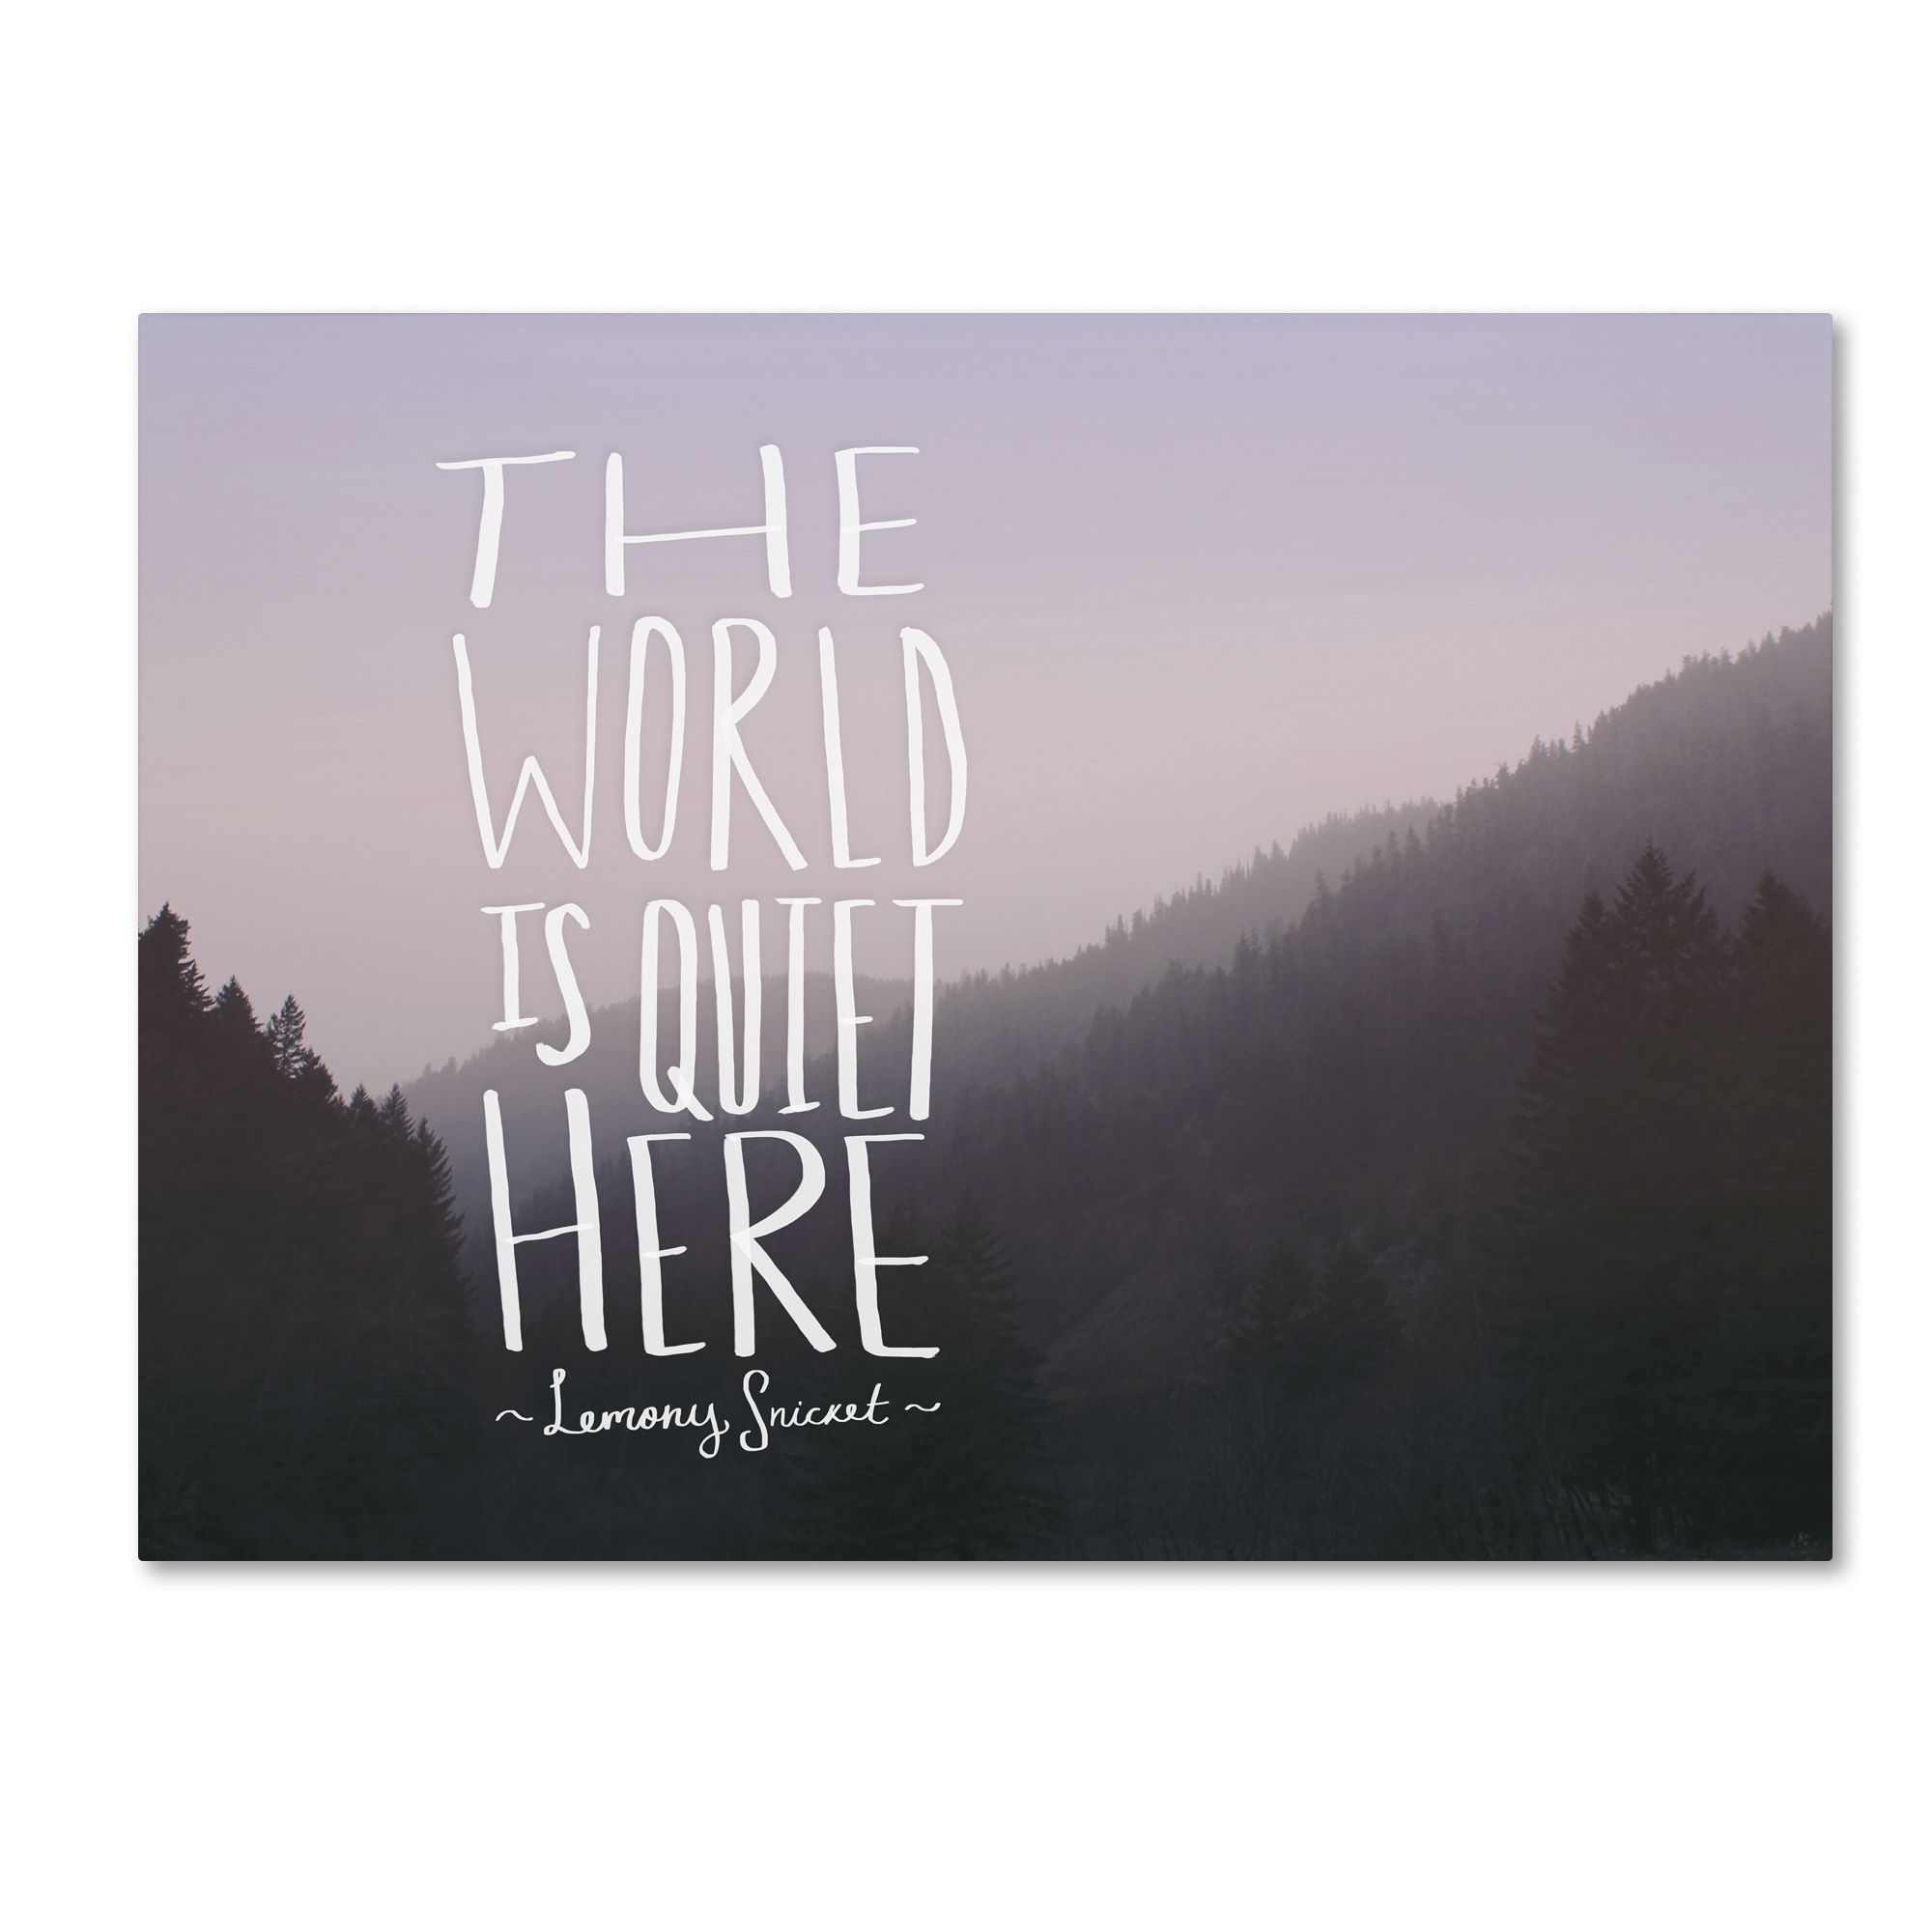 This ready to hang, gallery-wrapped art piece features a mountainous landscape and a quote about the world. Leah Flores brings together her love of photography and illustration to create adventuresome